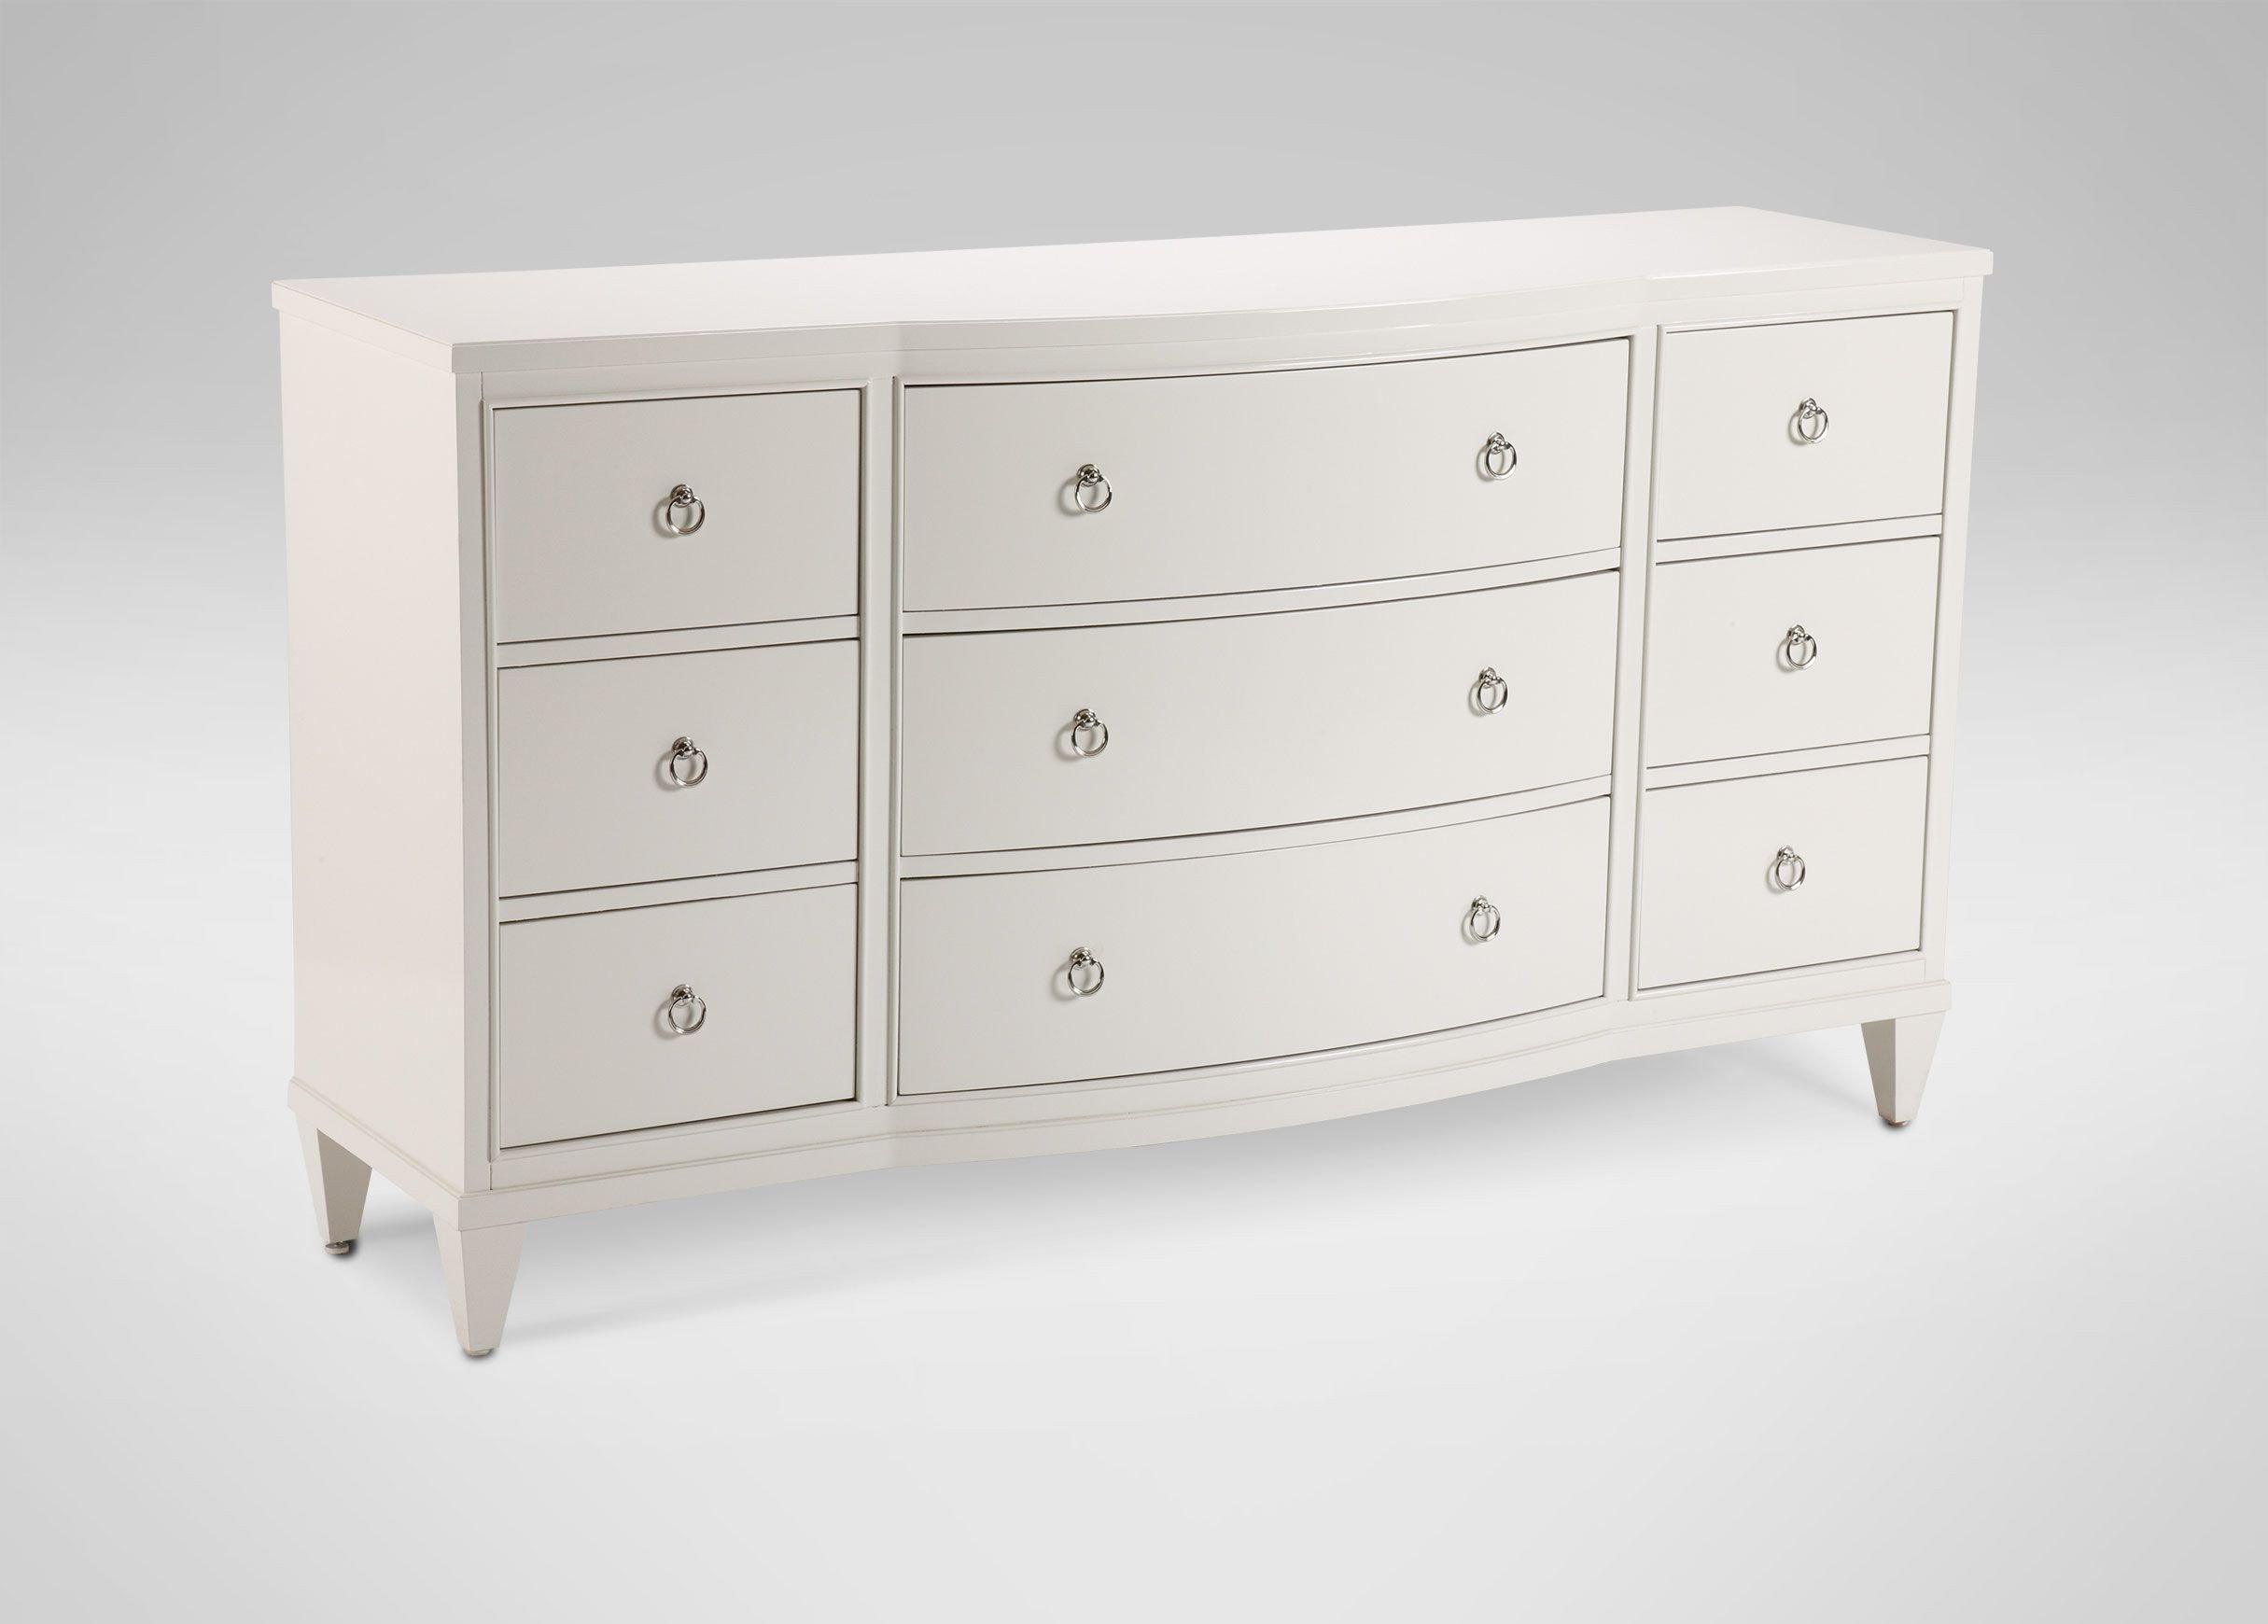 Bedroom Dressers and Chests Fresh Ethan Allen Heston Dresser ascot 793 Large Gray